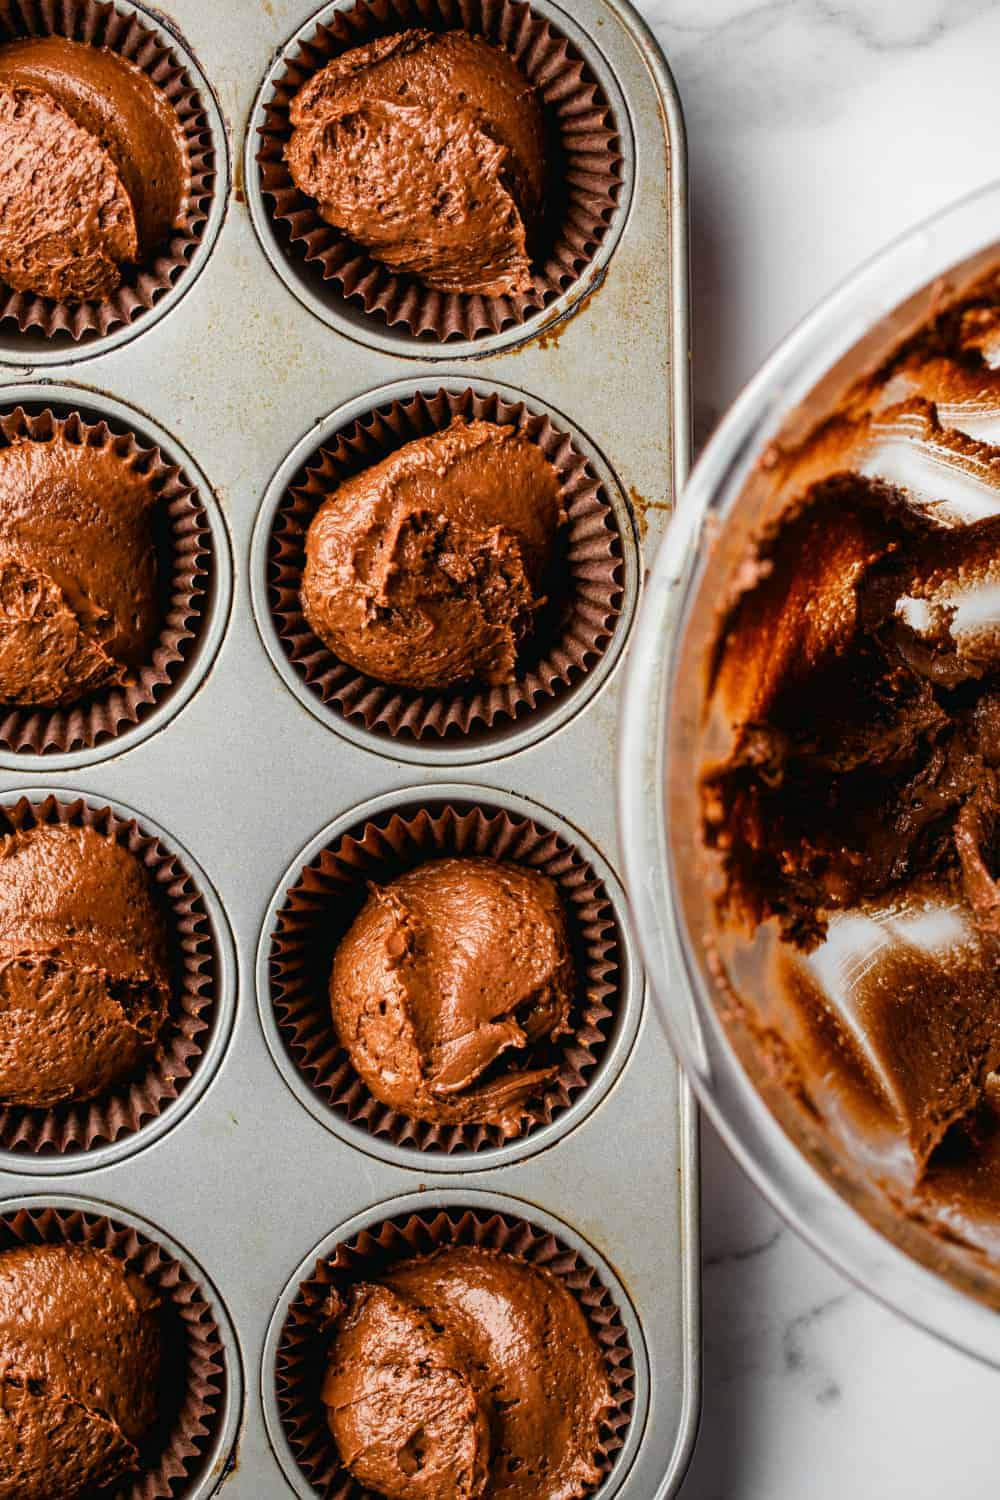 Make the best cupcakes with the easiest Doctored Cake Mix recipe!